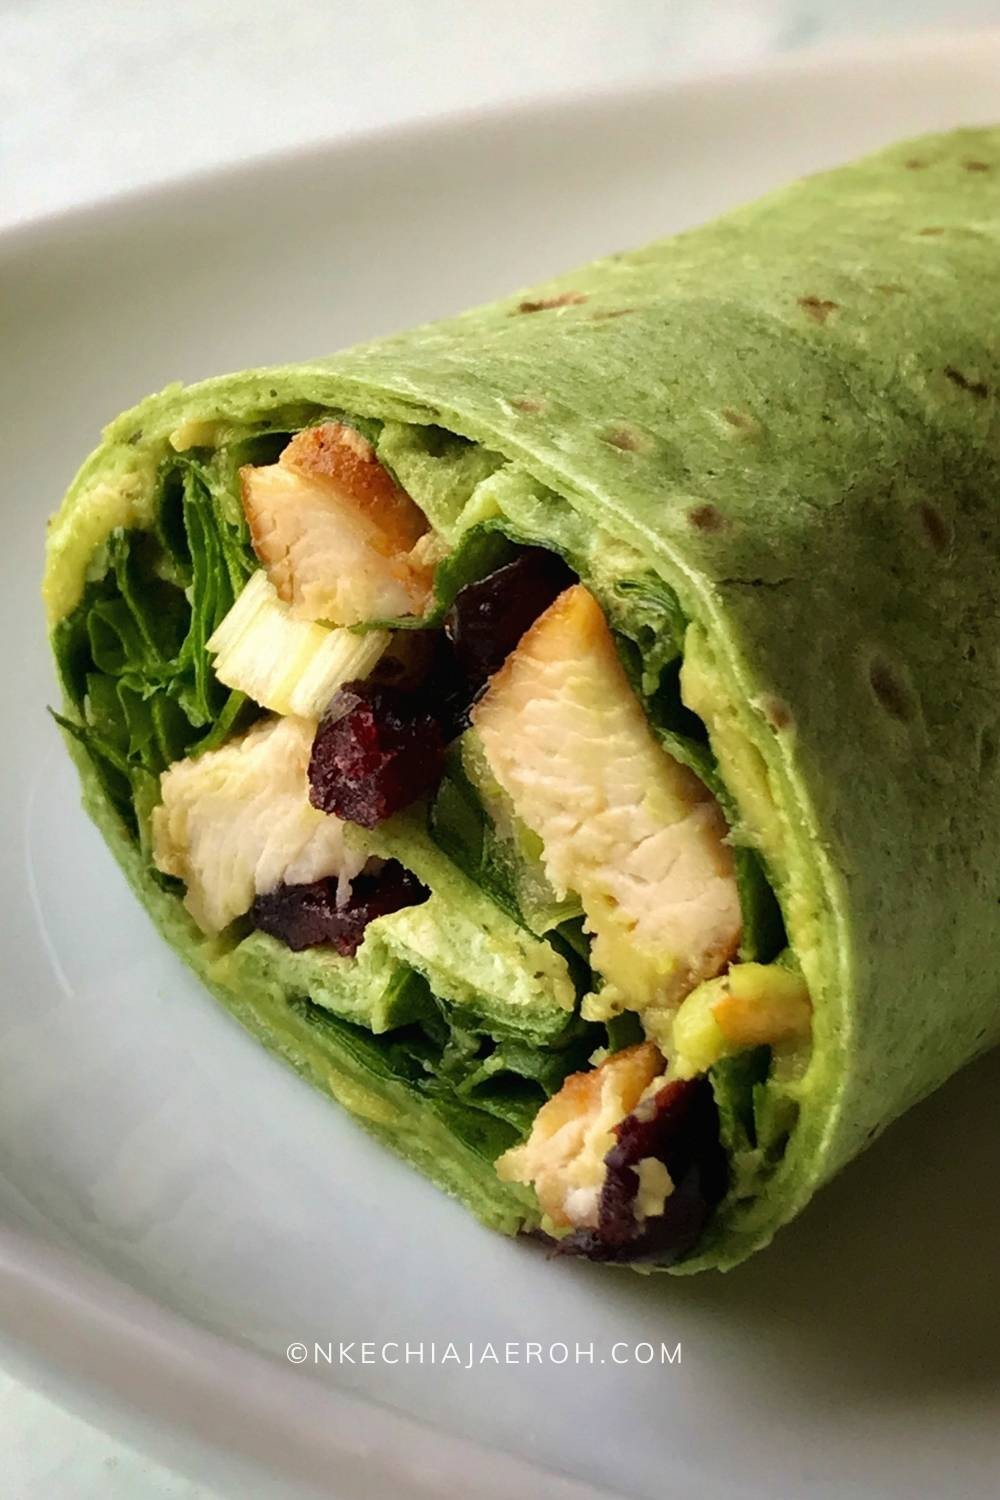 """Super easy to make healthy taco recipe comprising of """"Garden Spinach Herb Wrap,"""" aka, the taco shell. Then filled up with well-seasoned and sautéed chicken breast, fresh spinach leaves, and spicy guacamole. Dry cranberries and green onions are optional, however necessary. Typically taco sizes range from small hand-sized tortillas, like 8-inch to 12-inch corn or flour tortillas. Though taco originated in Mexico, it is very much acceptable in most parts of the world. Taco recipe is adaptable, versatile, and easily customizable.  #Taco #Tacorecipe #healthytaco #spinachwrap #Greentacowrap"""